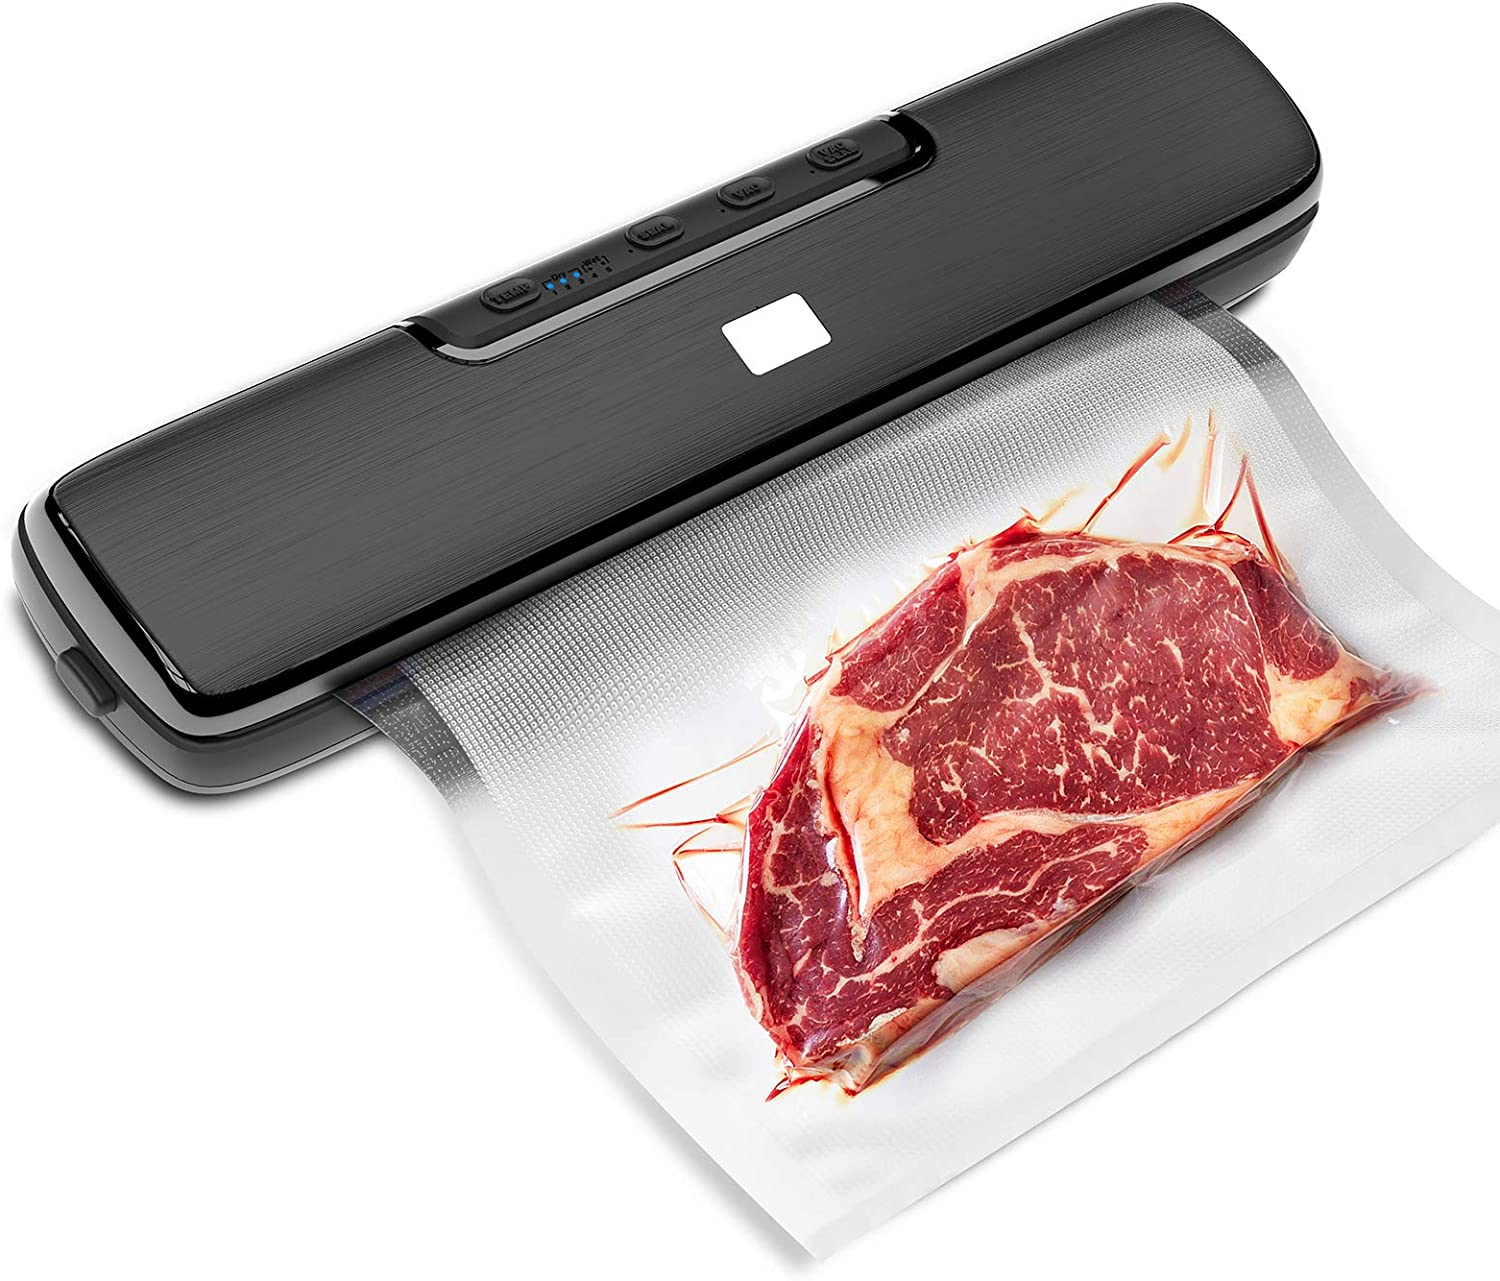 Miavogo Vacuum Sealer Machine, Automatic Food Saver Vacuum Sealer, Food Sealers Vacuum Packing Machine with Bags (15pcs) & Starter Kits, for Dry & Moist Food Storage